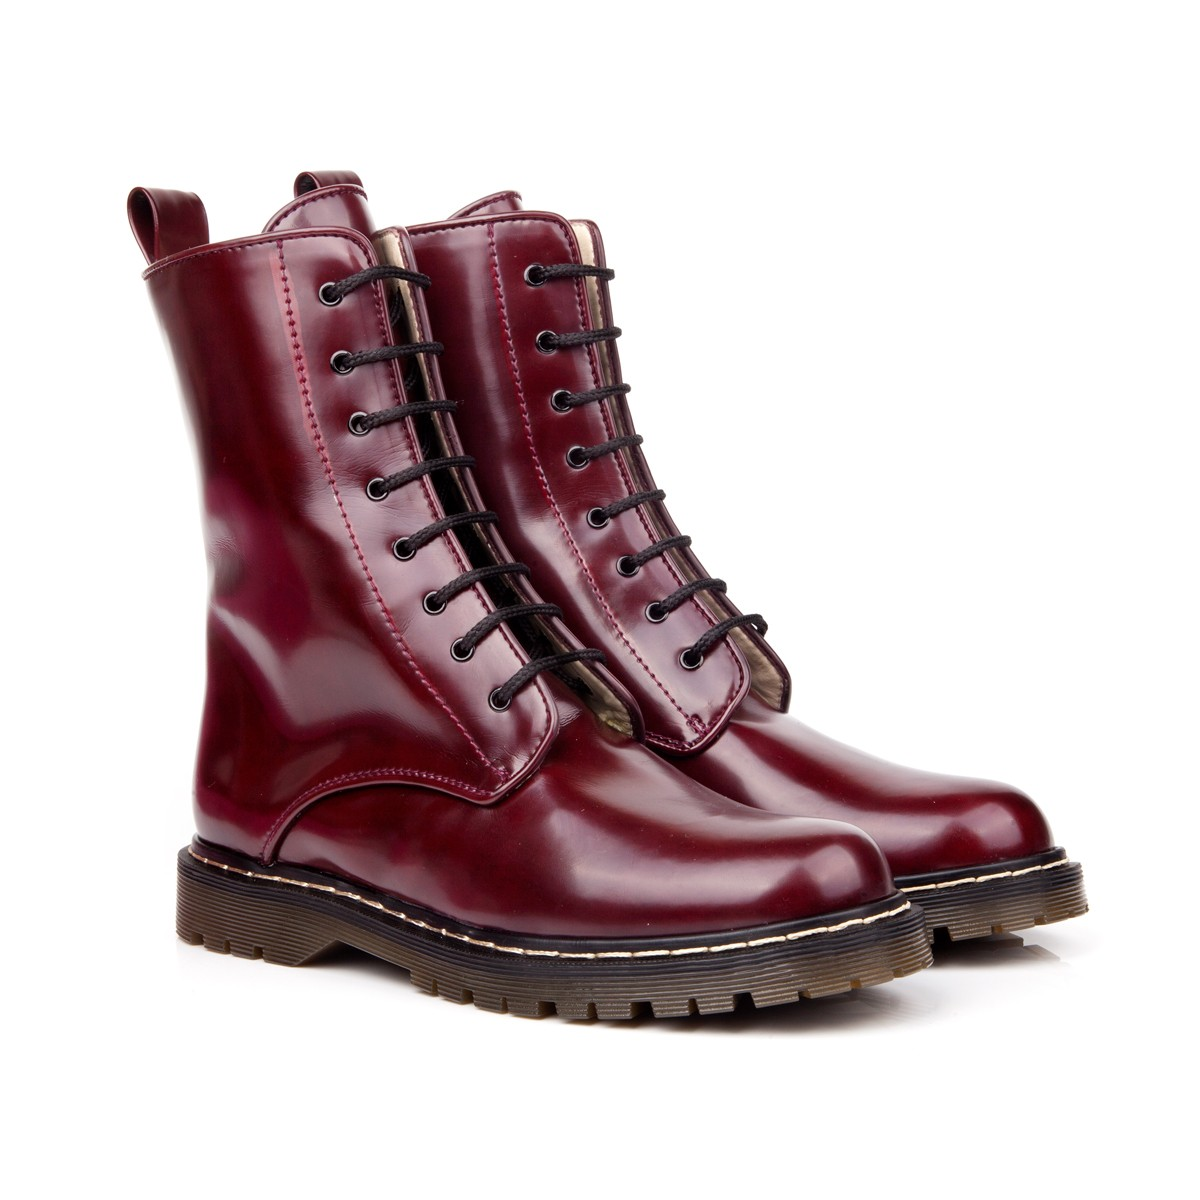 Beyond Skin   FRIDA BURGUNDY LACE UP VEGAN BOOTS